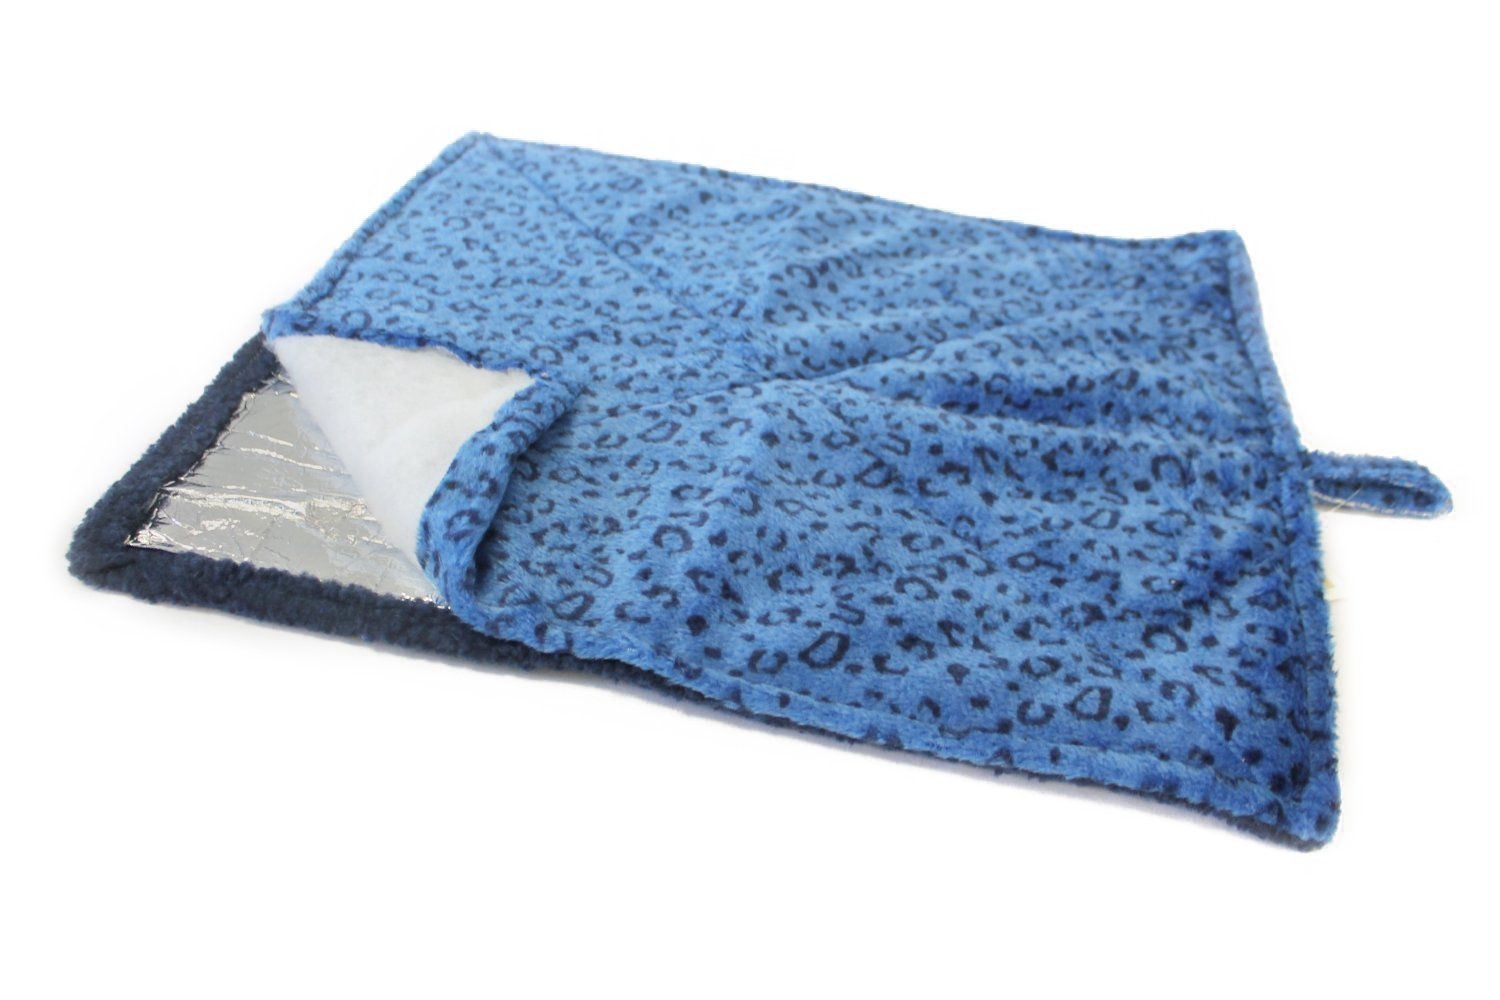 Milliard Thermal Cat Mat//Self Heating to keep Your Pet Warm and Reversible and Washable for Easy Maintenance 21in x 17in